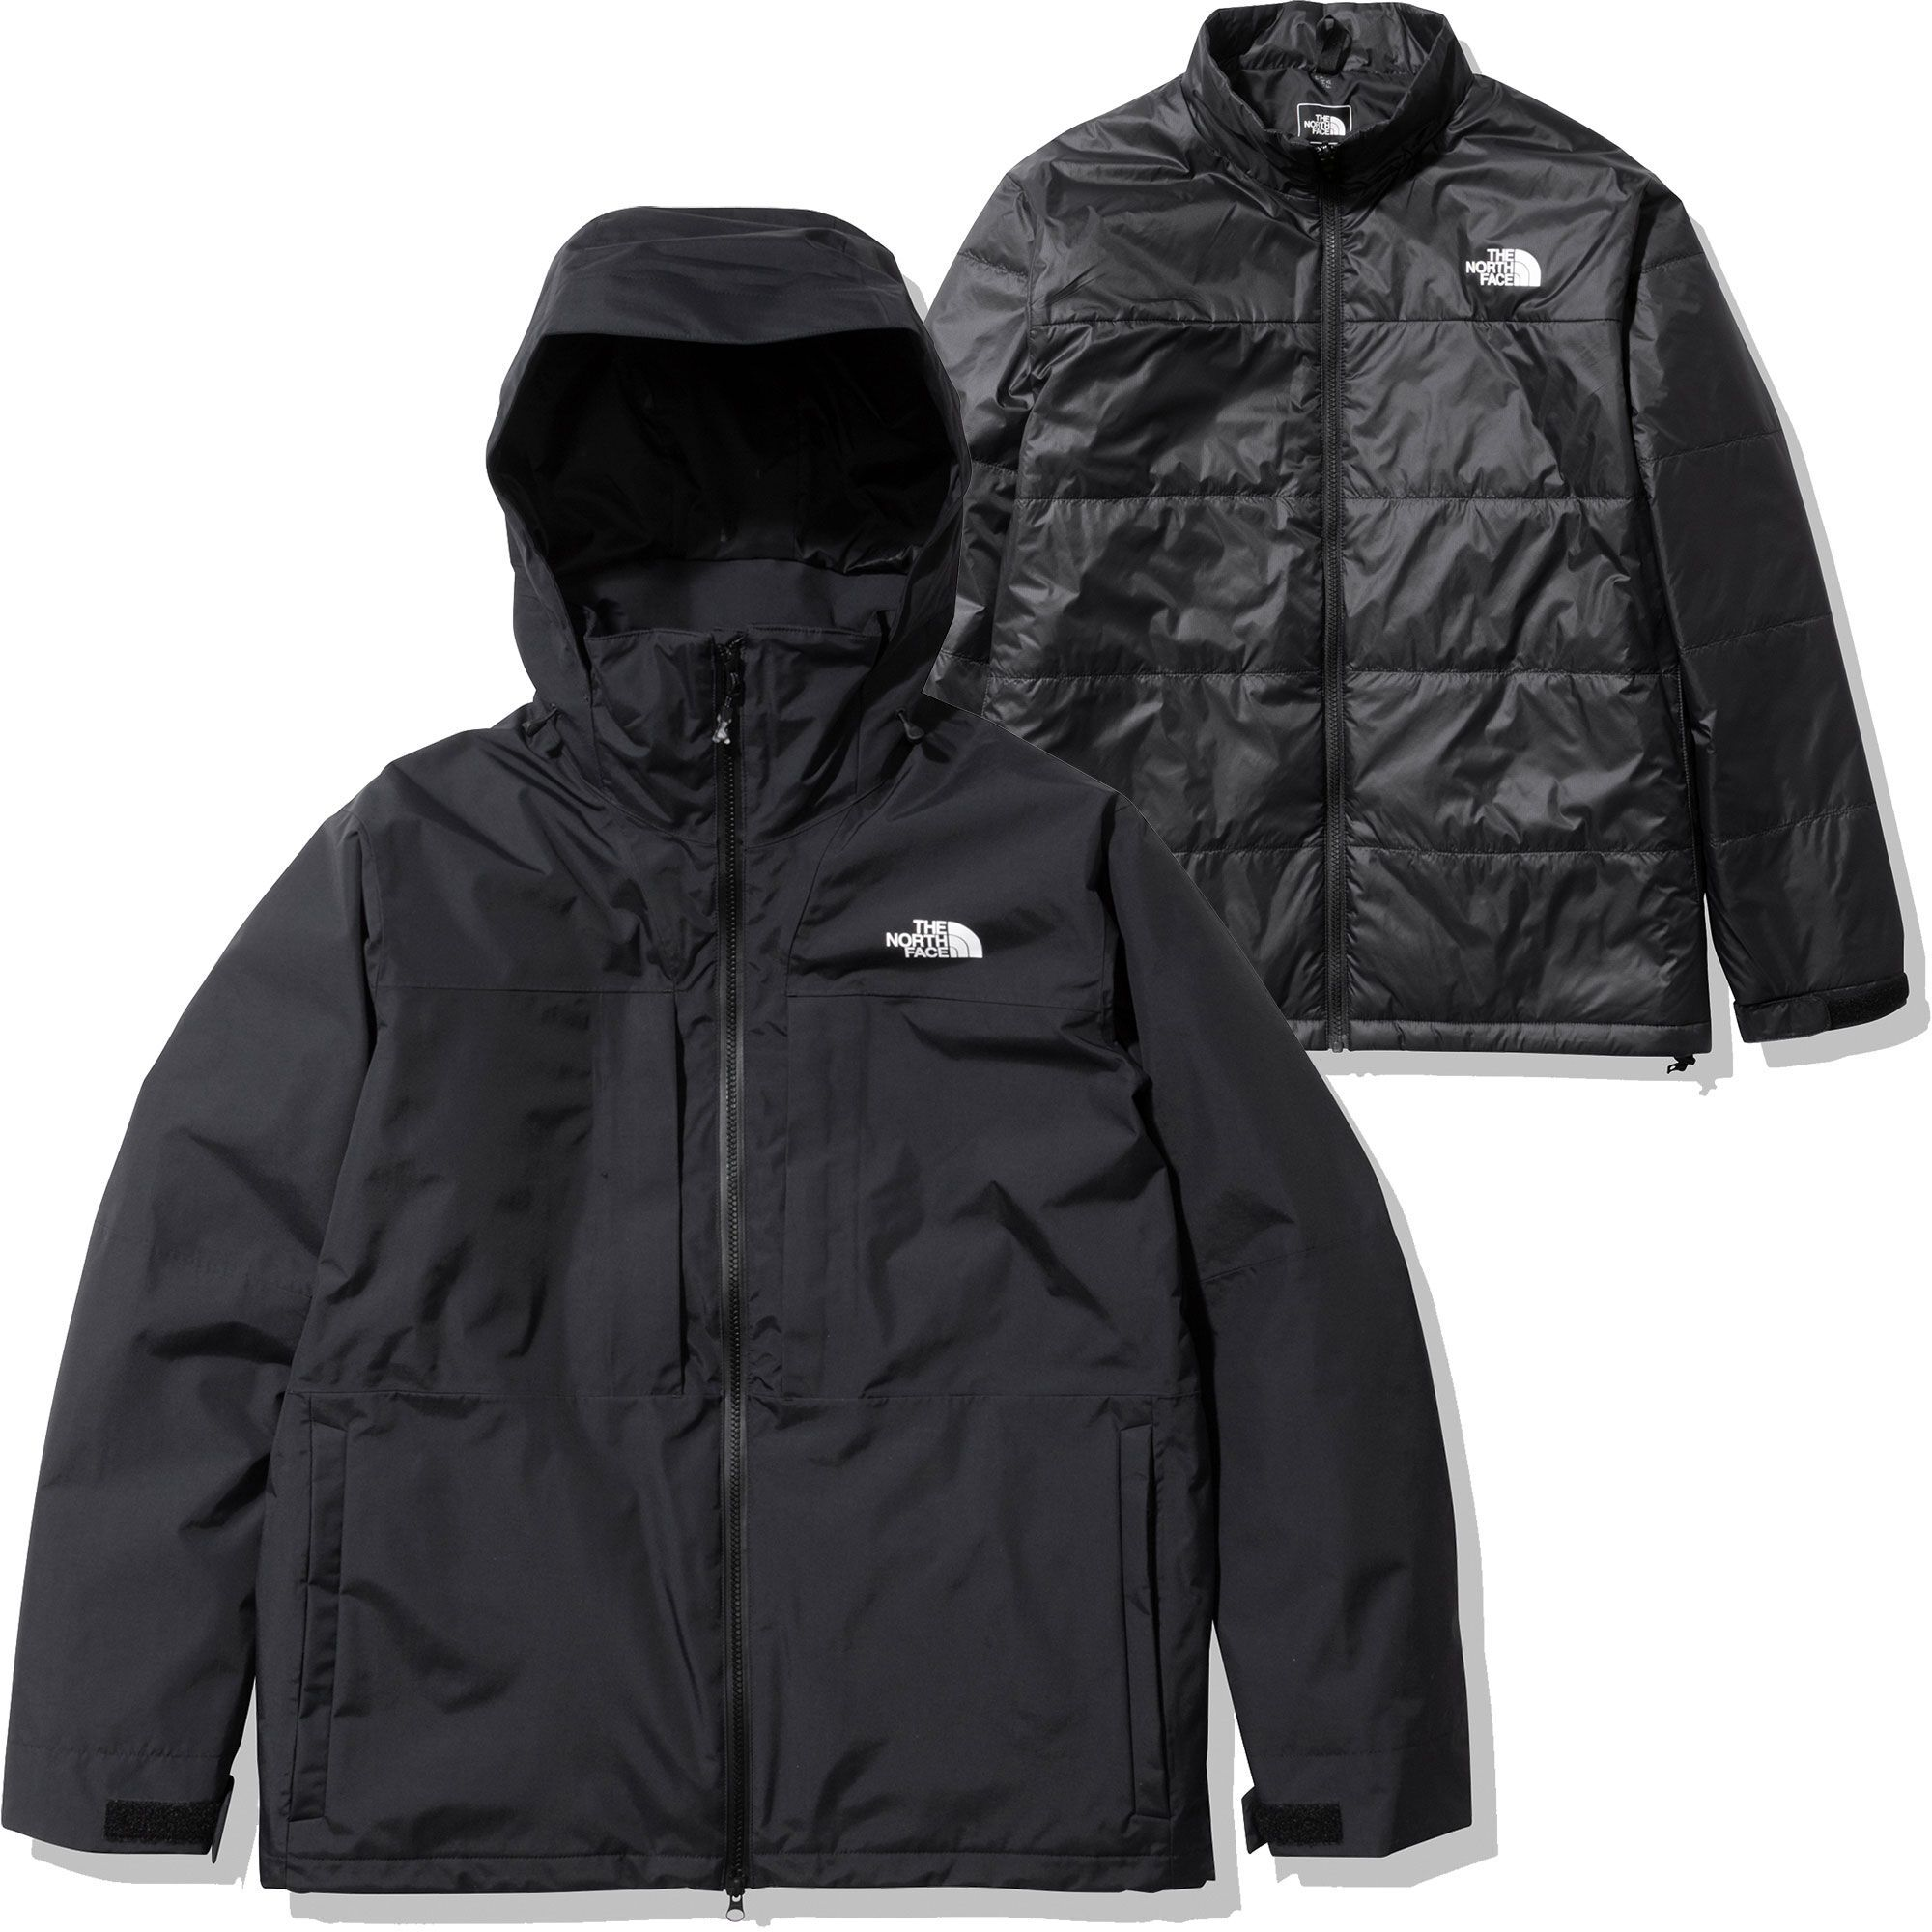 【30%OFF】THE NORTH FACE / STORMPEAK TRICLIMATE JACKET(20AW)